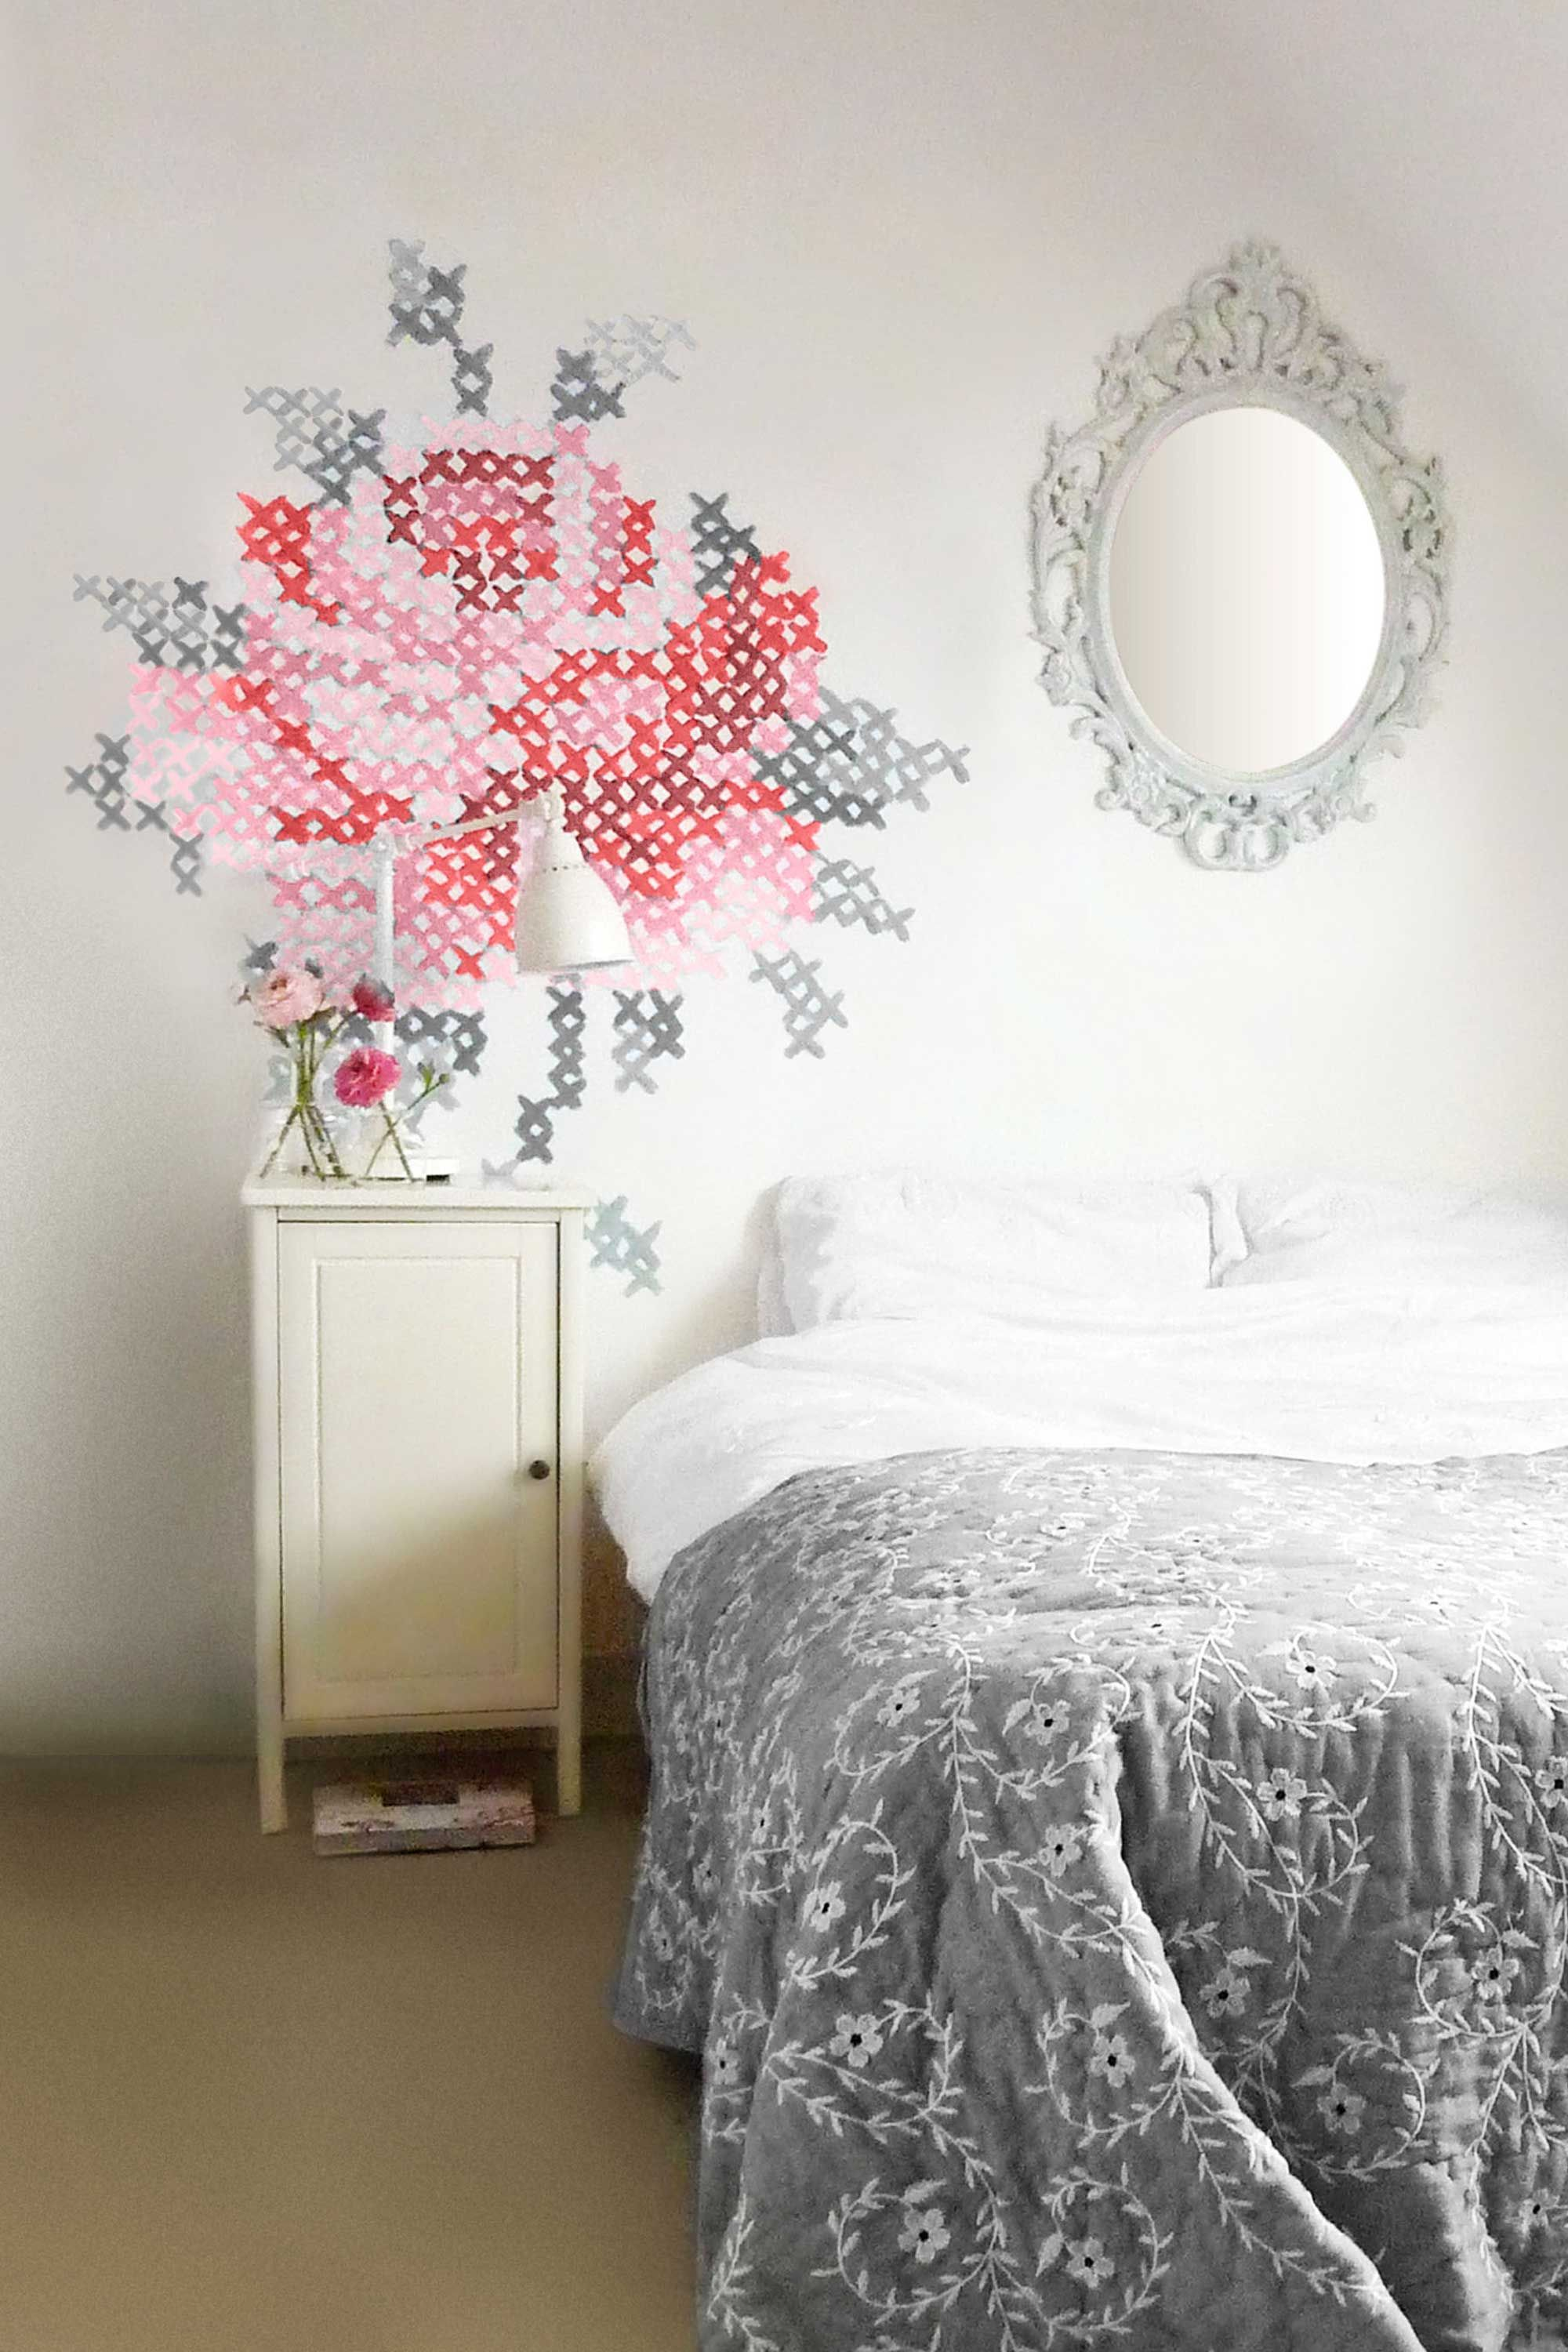 crafty ideas for home decor you can make yourself cross stitch